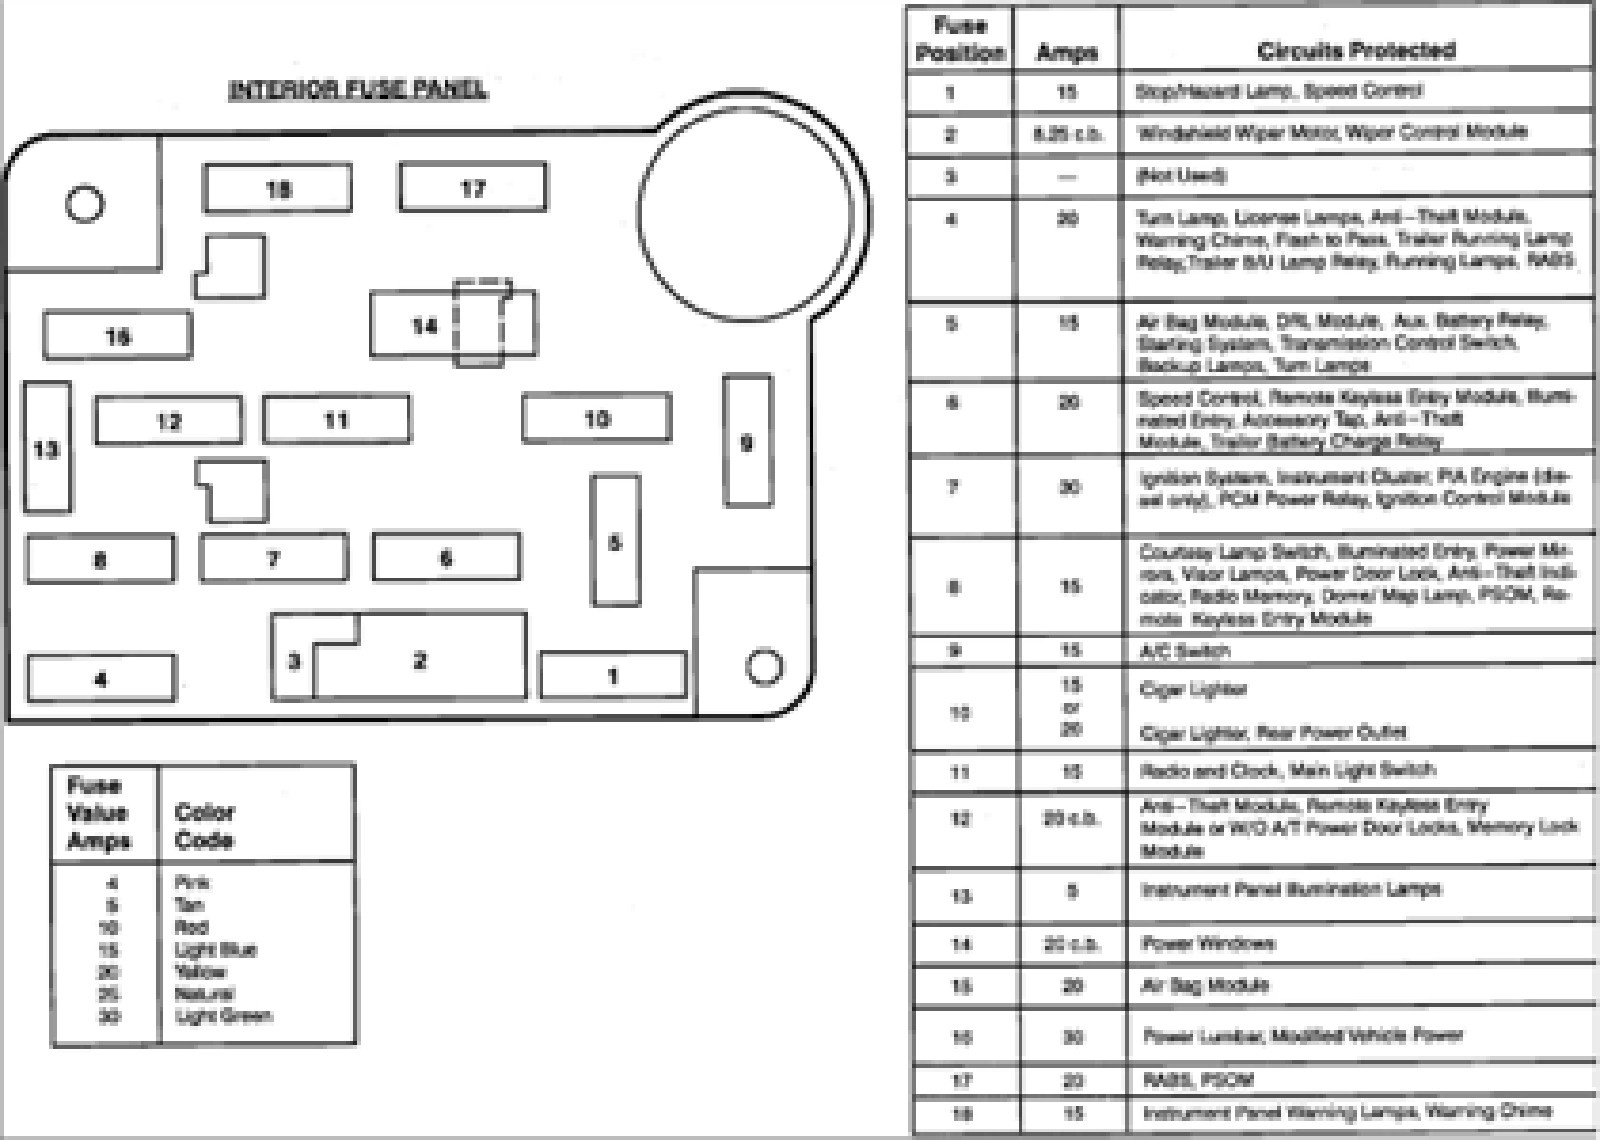 pic 8862473225641007897 1600x1200 ford e 150 questions fuse diagram for a 1993 ford econoline van ford e 150 fuse box diagram at virtualis.co